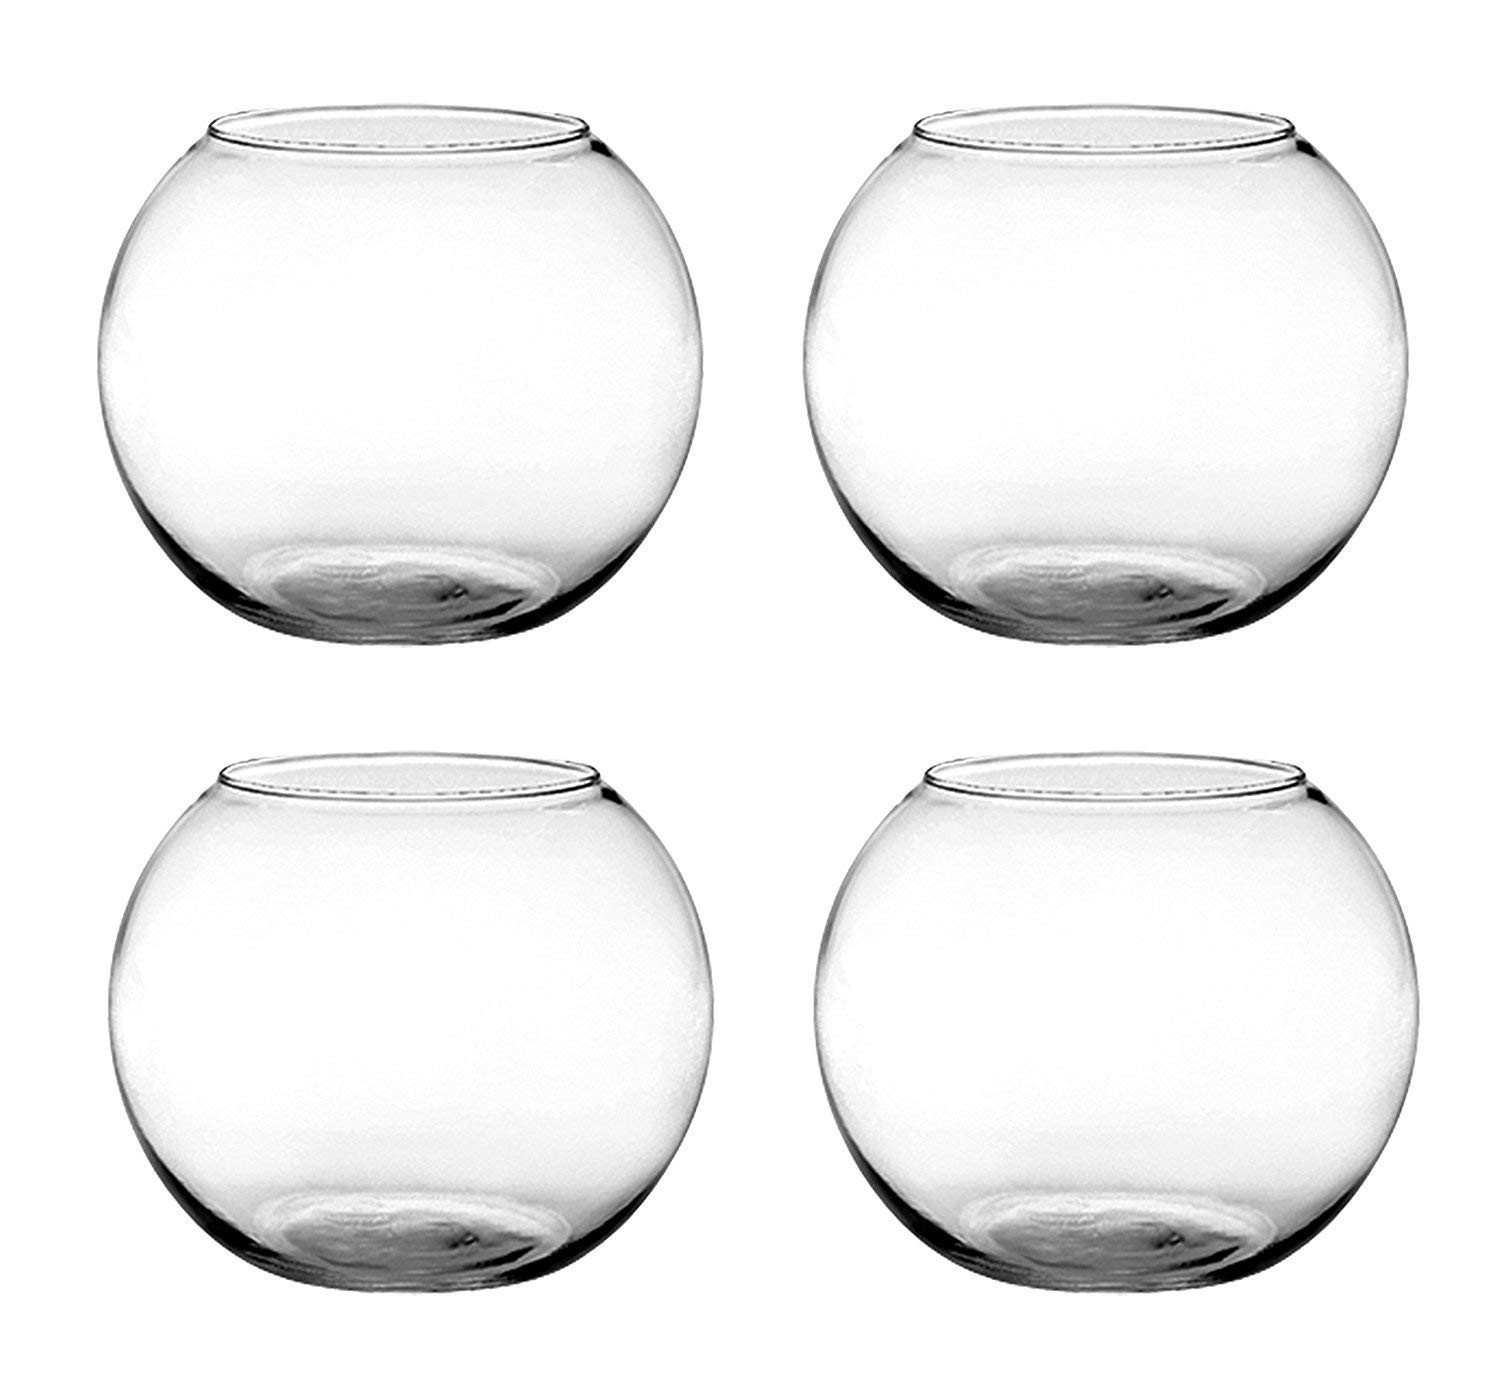 clear glass fish shaped vase of amazon com floral supply online set of 4 6 rose bowls glass regarding amazon com floral supply online set of 4 6 rose bowls glass round vases for weddings events decorating arrangements flowers office